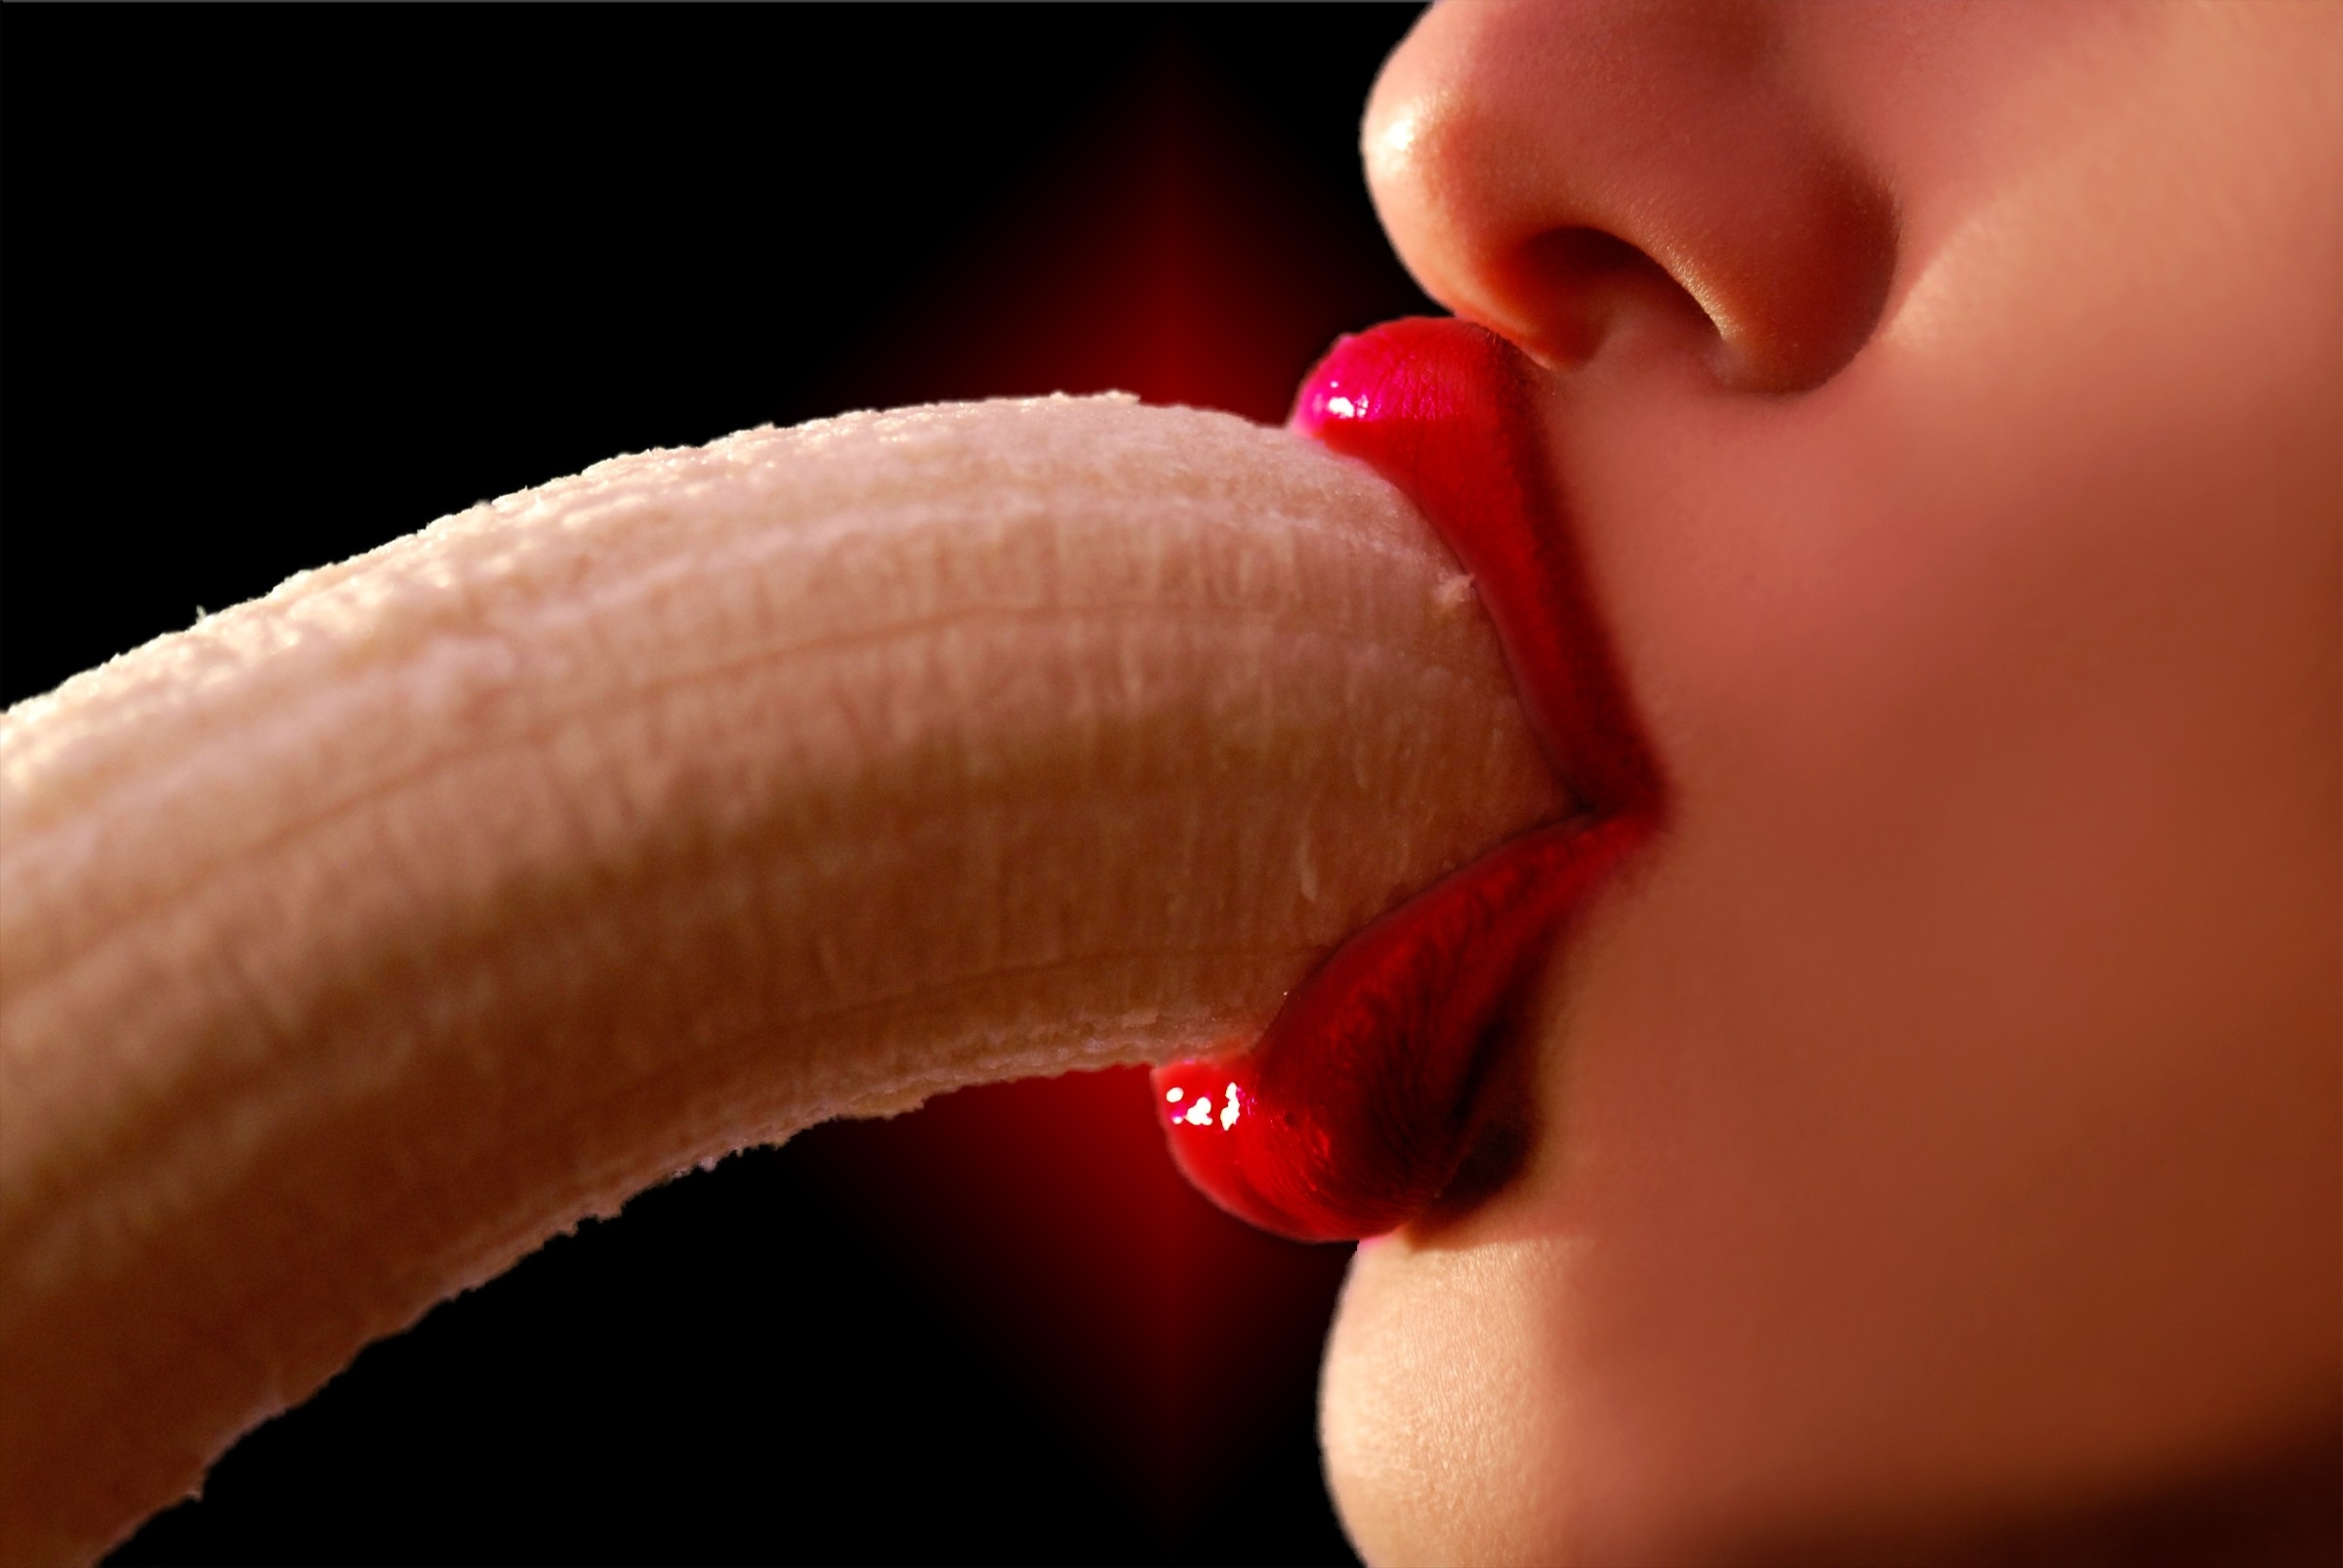 From The Male Perspective: 11 Ways To Spice Up A BJ